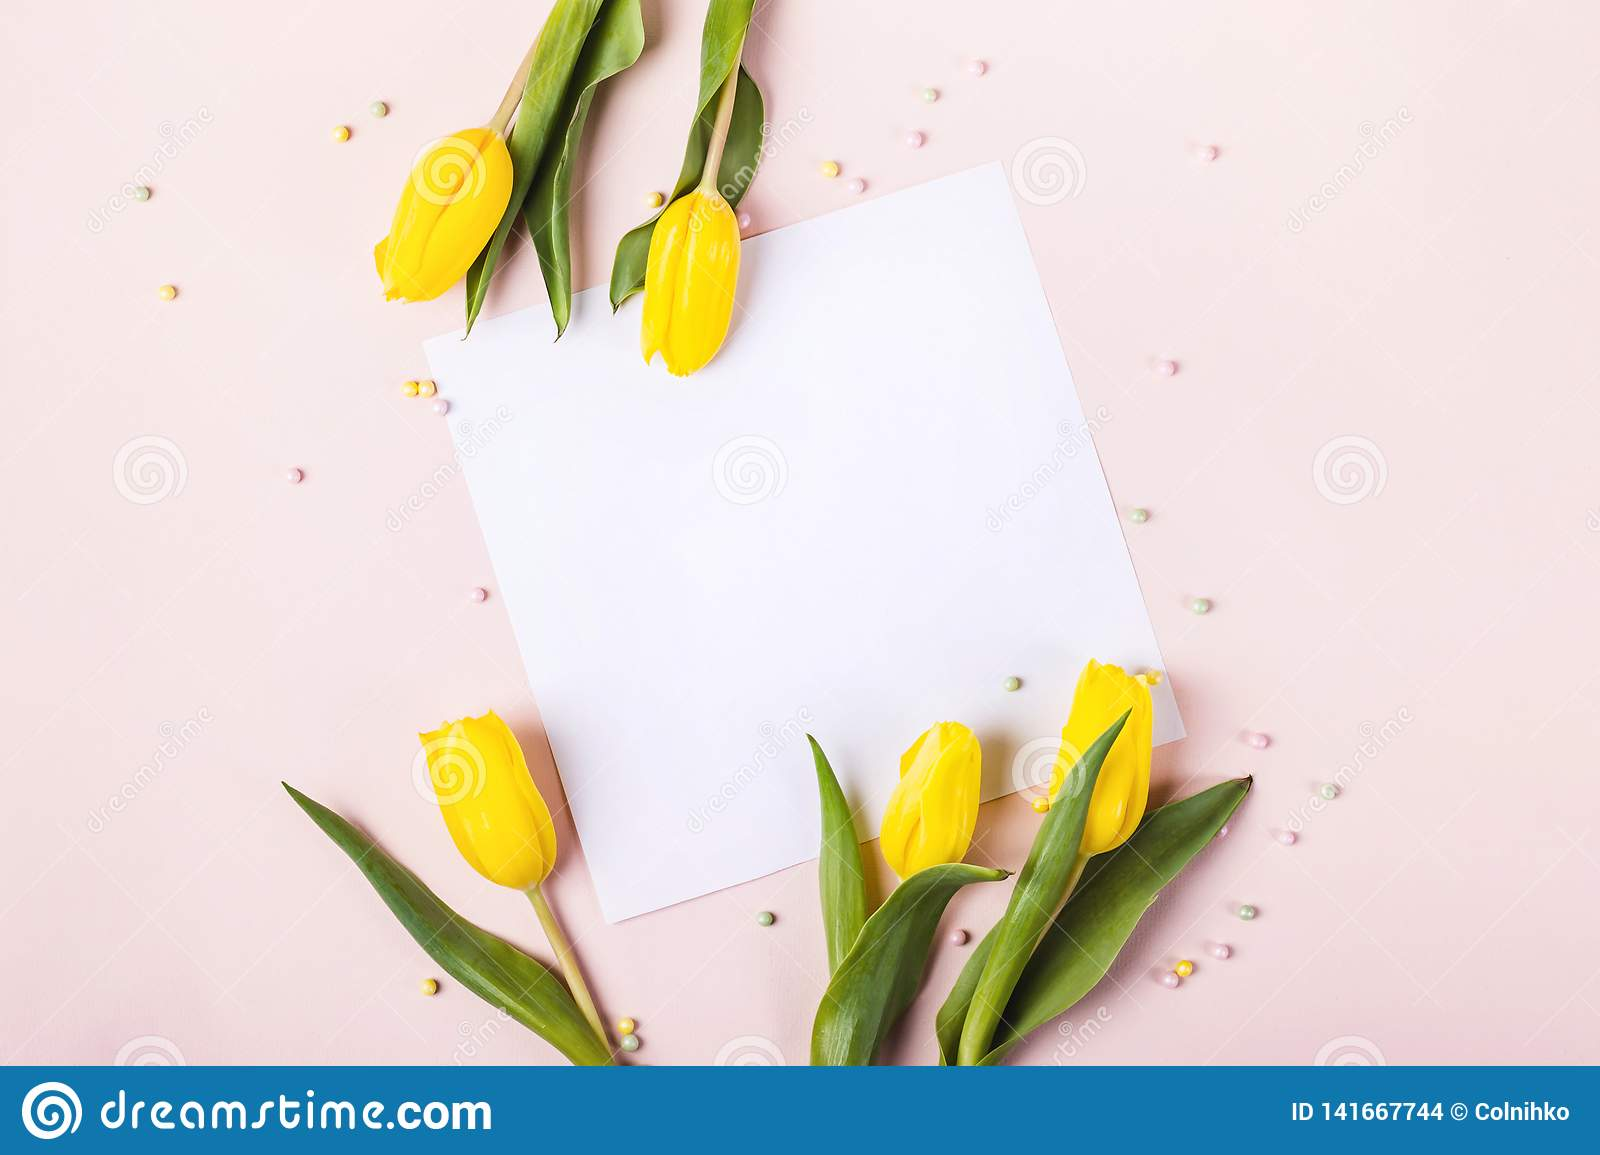 Beautiful yellow tulip flowers on pastel pink background for greeting message. Holiday mock up